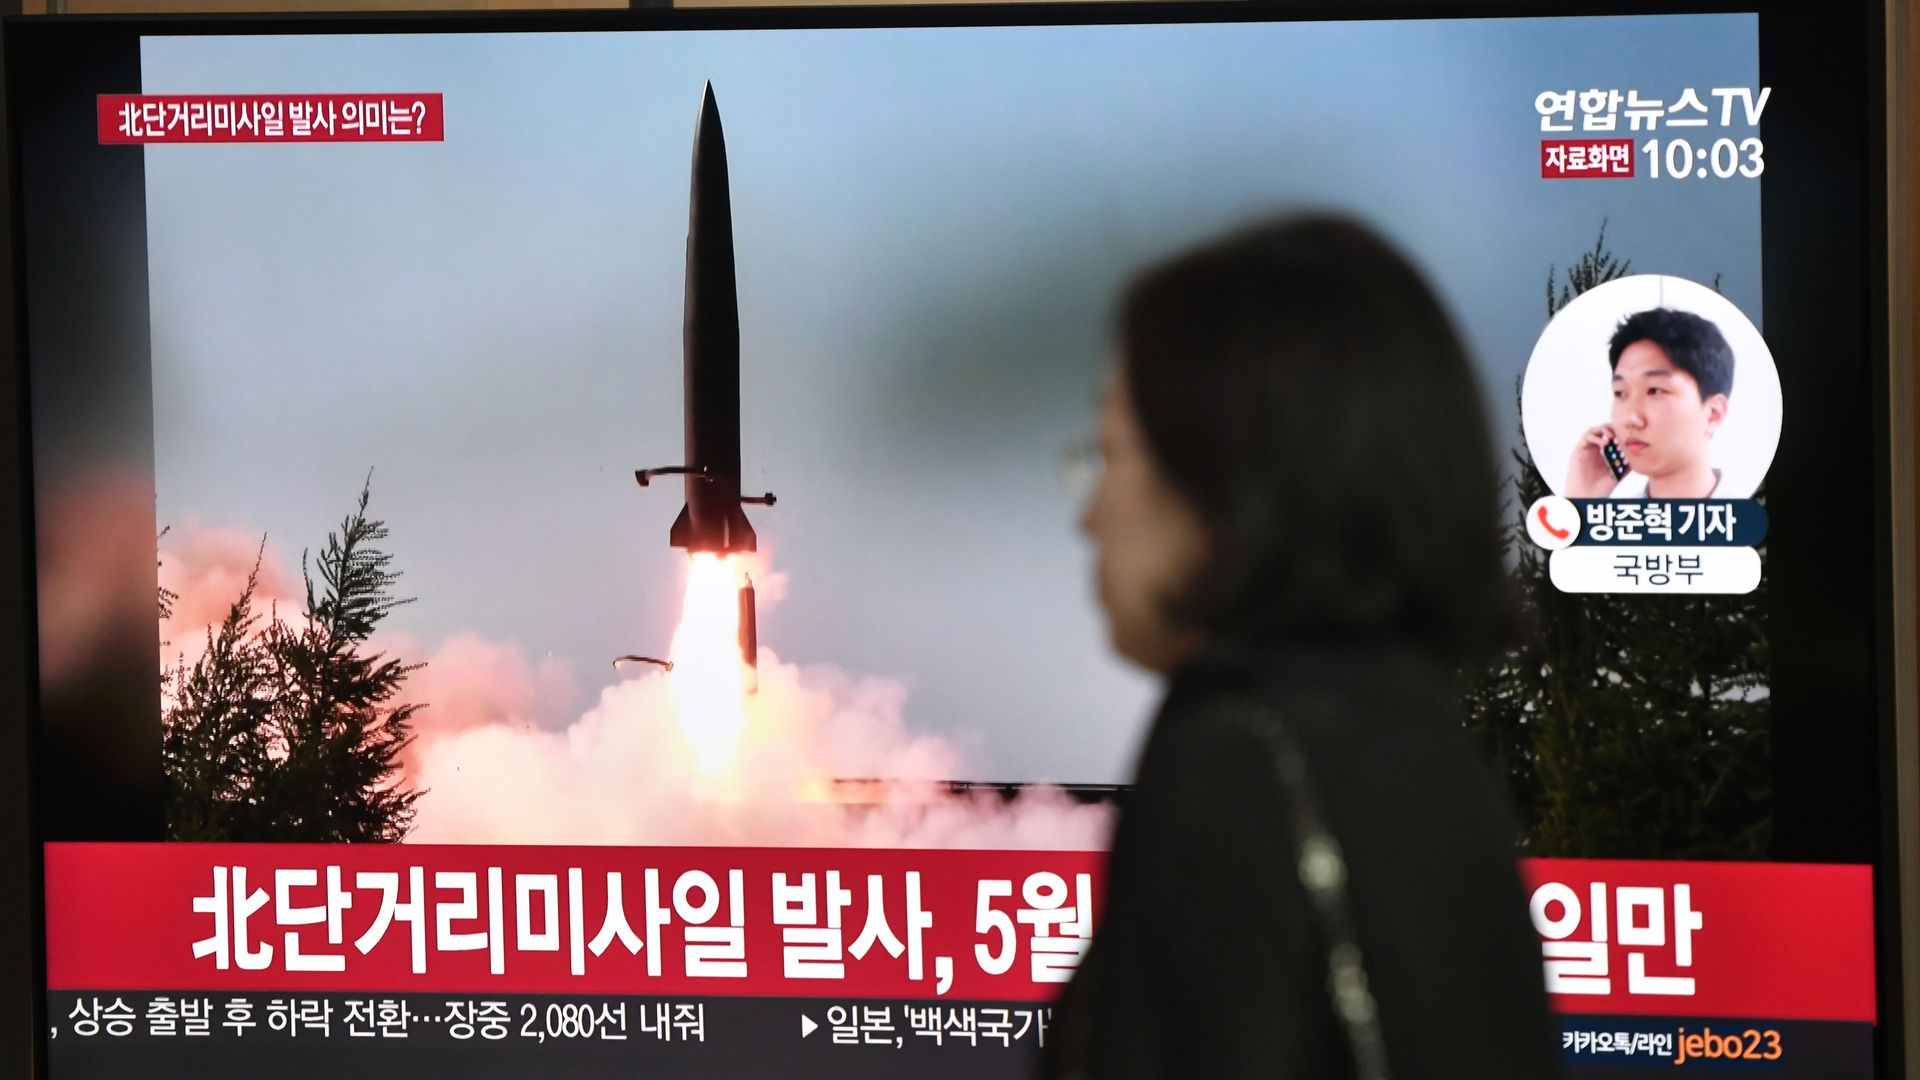 woman standing next to a television showing a missile launch